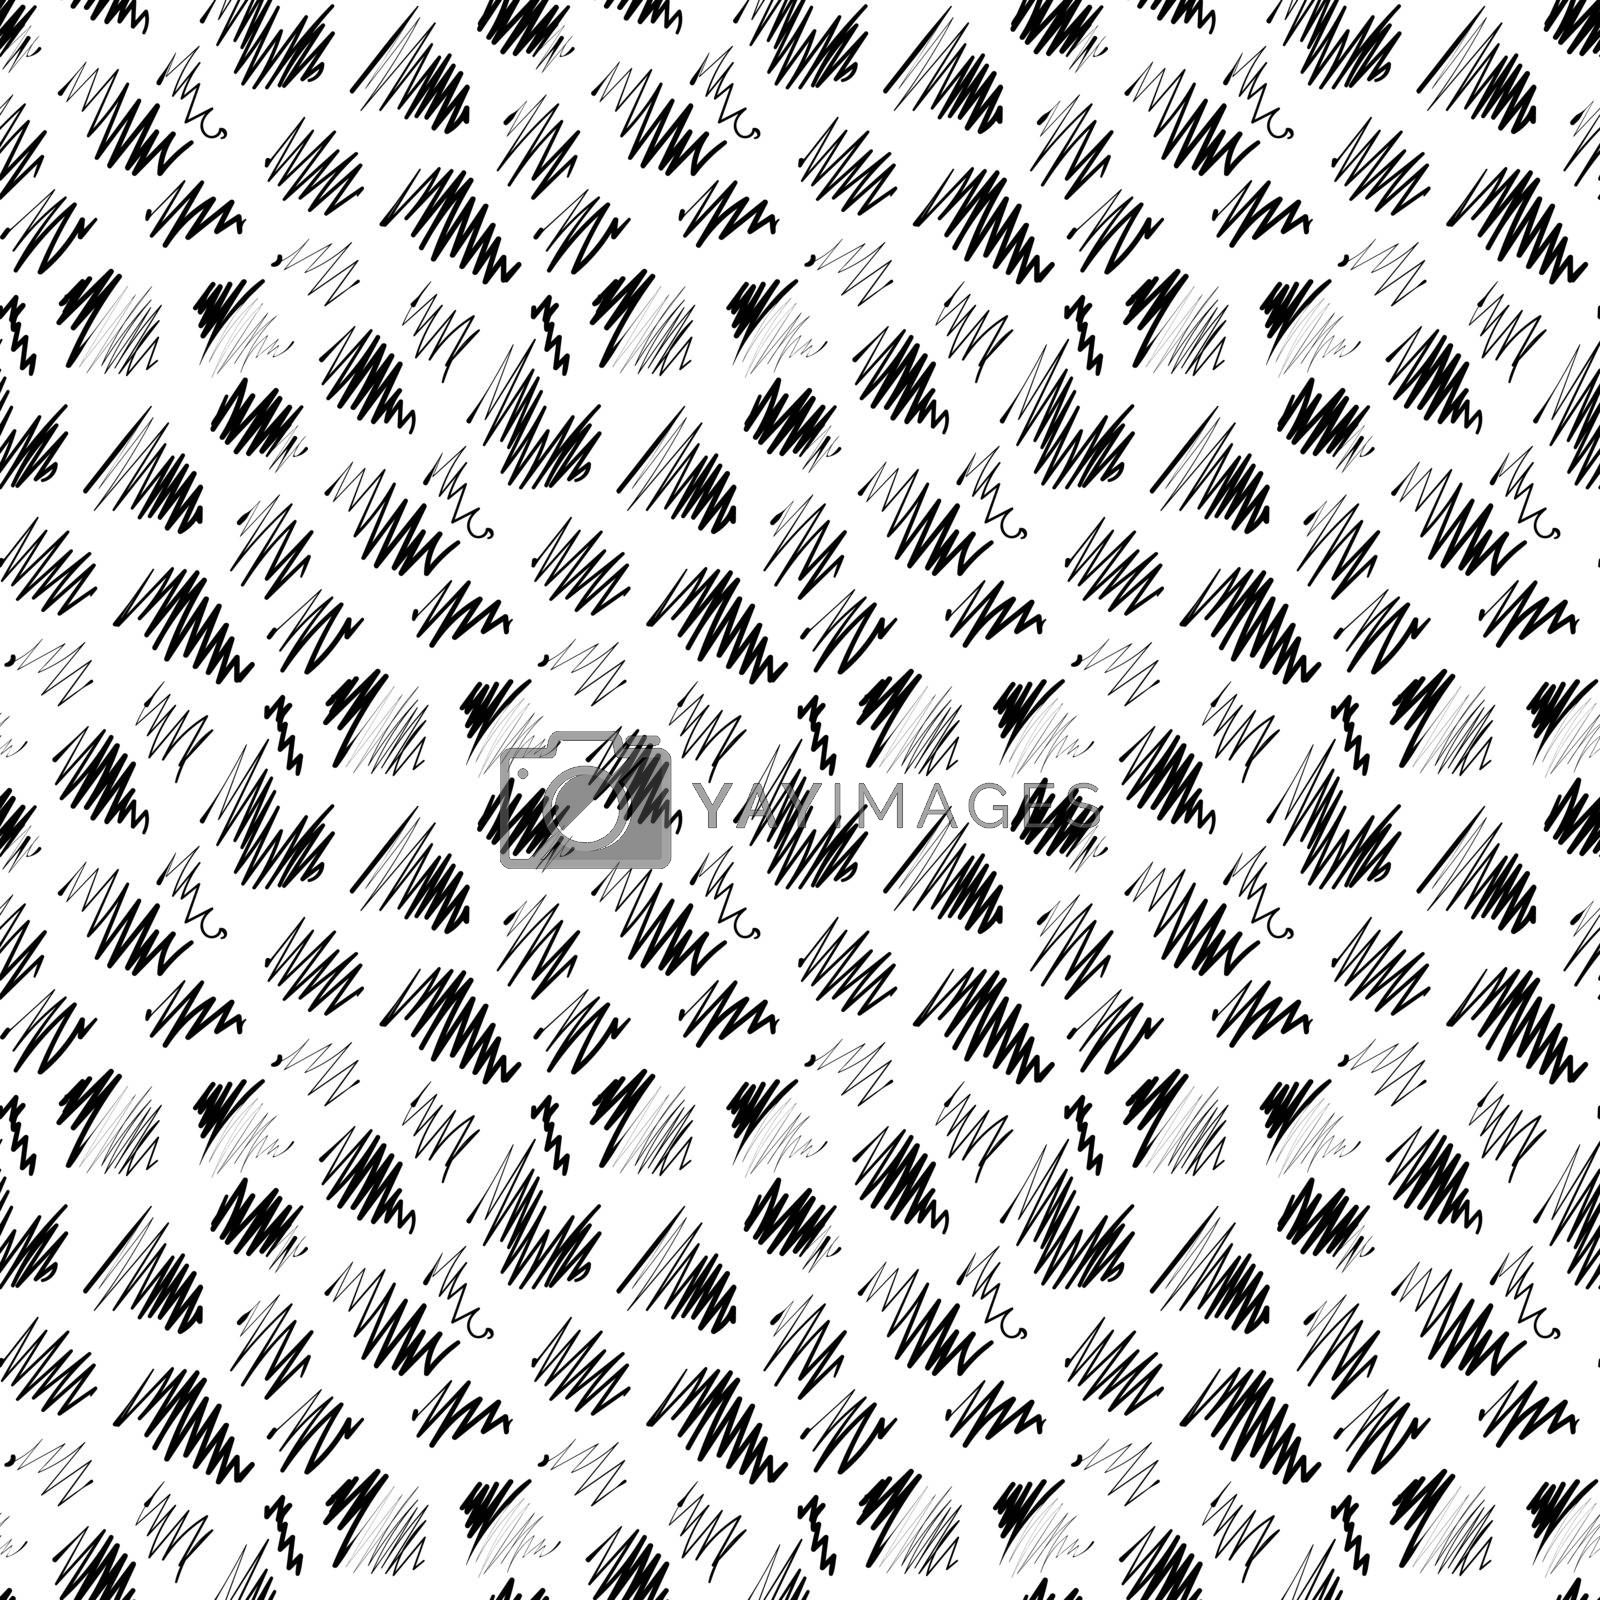 Imitation ink plain background hand drawn, seamless pattern